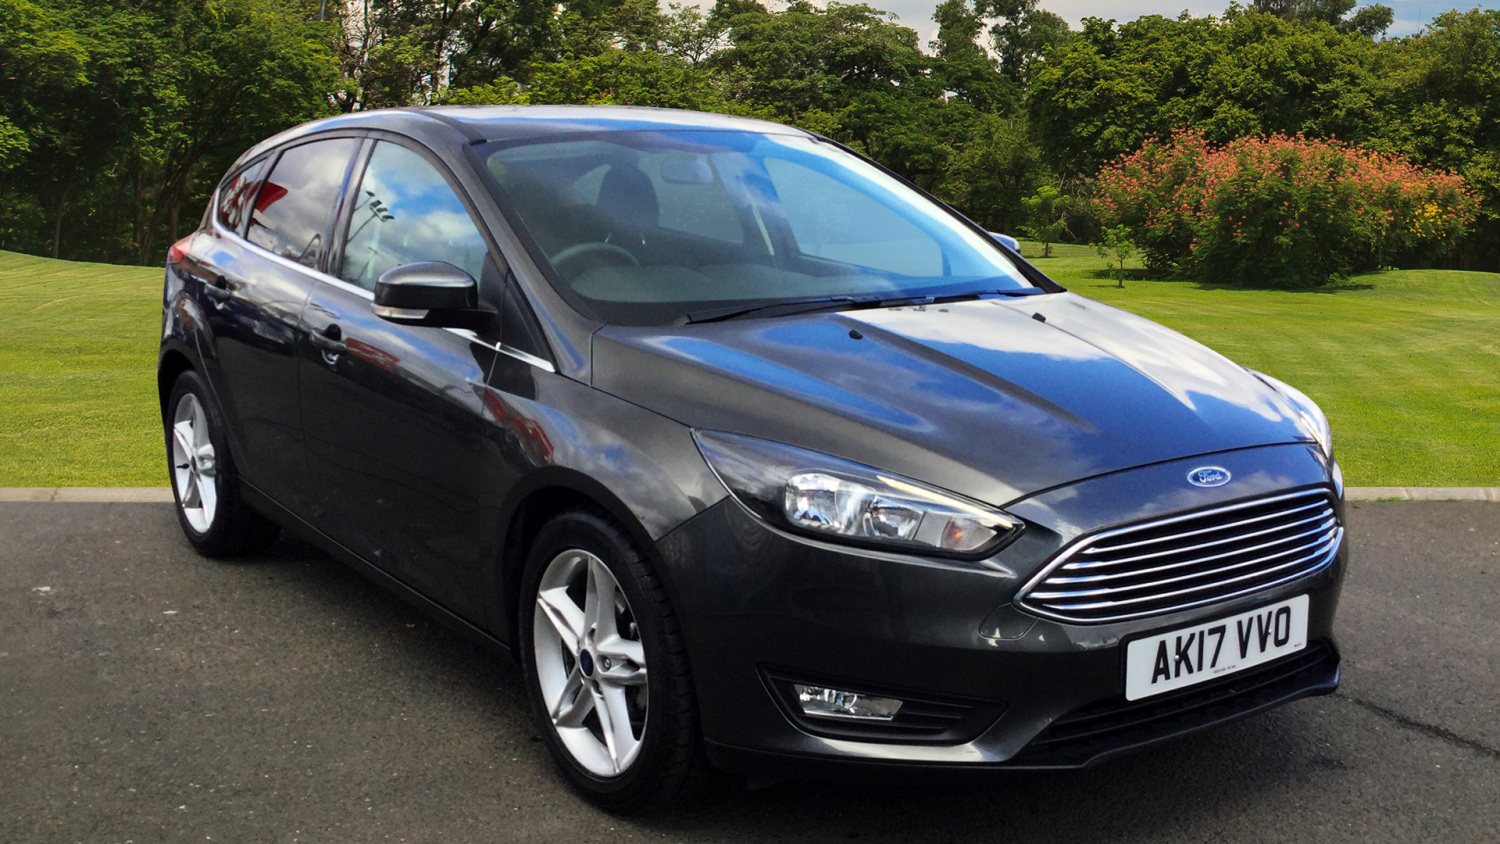 used ford focus 1 0 ecoboost 125 zetec edition 5dr auto petrol hatchback for sale in scotland. Black Bedroom Furniture Sets. Home Design Ideas